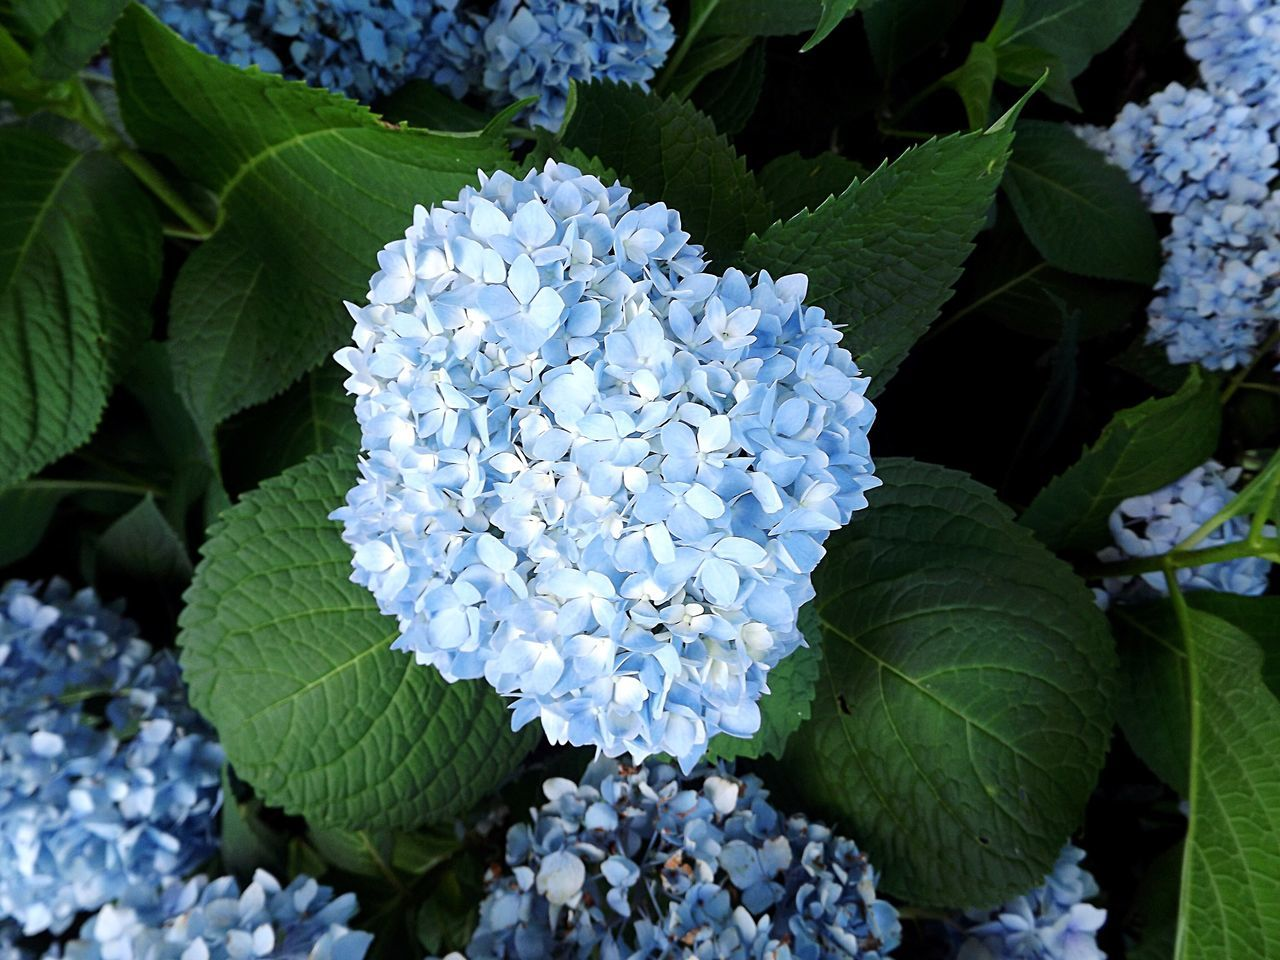 growth, beauty in nature, leaf, flower, hydrangea, nature, green color, freshness, plant, petal, blooming, no people, fragility, day, outdoors, flower head, close-up